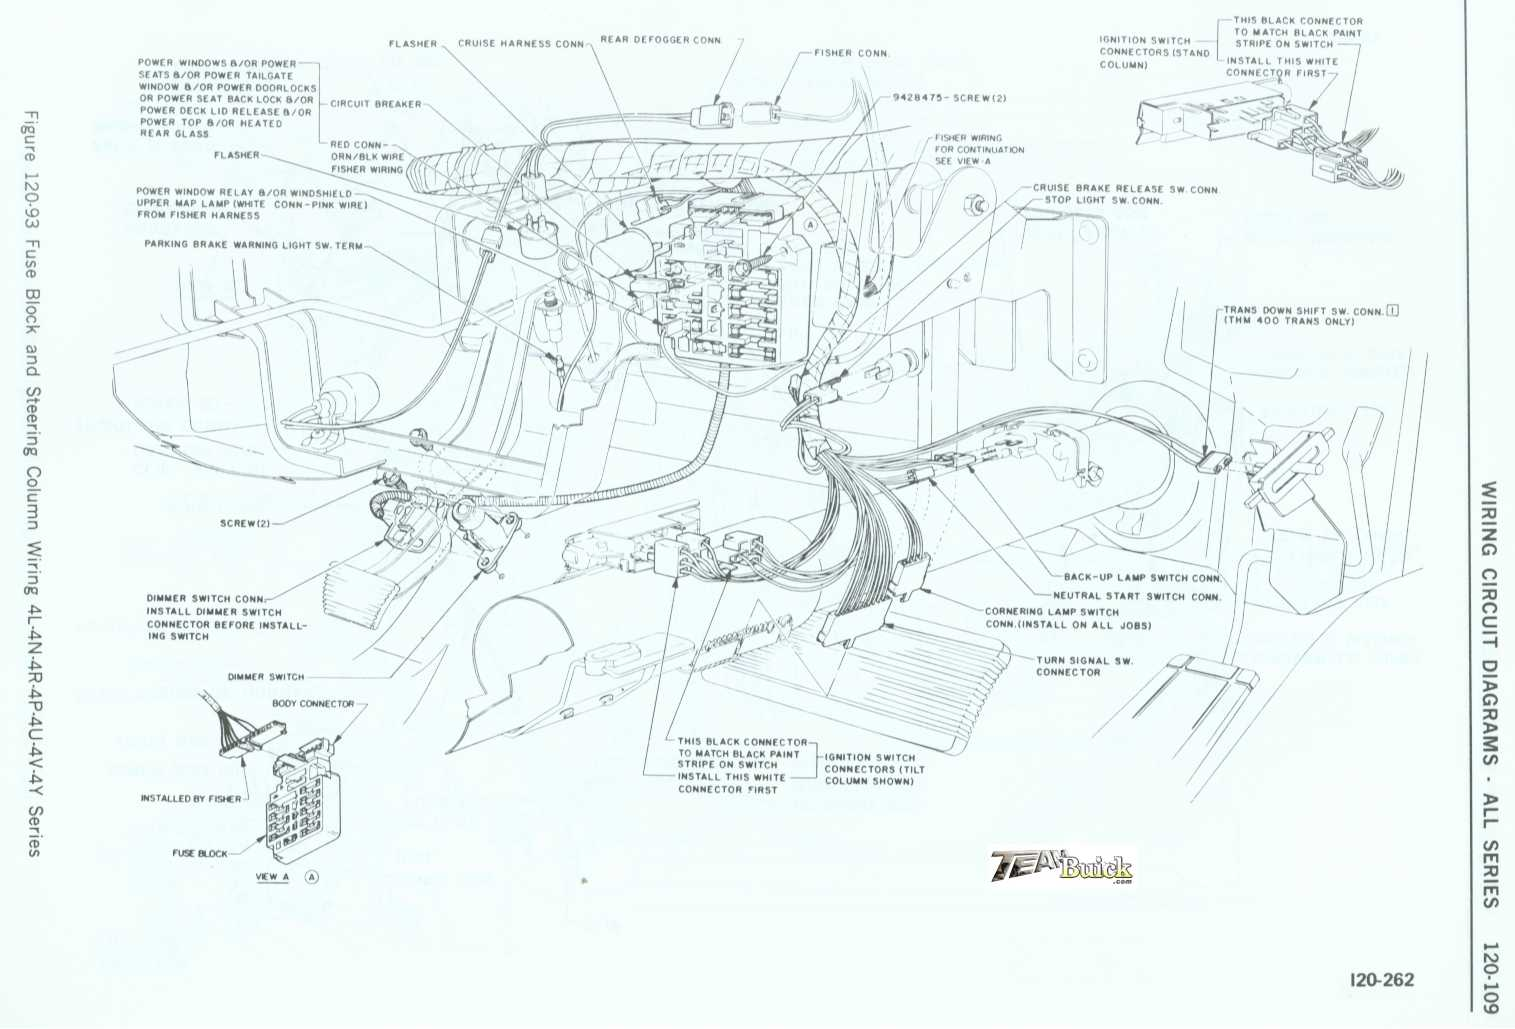 1989 Arctic Cat Wildcat 650 Wiring Diagram 1989 Arctic Cat